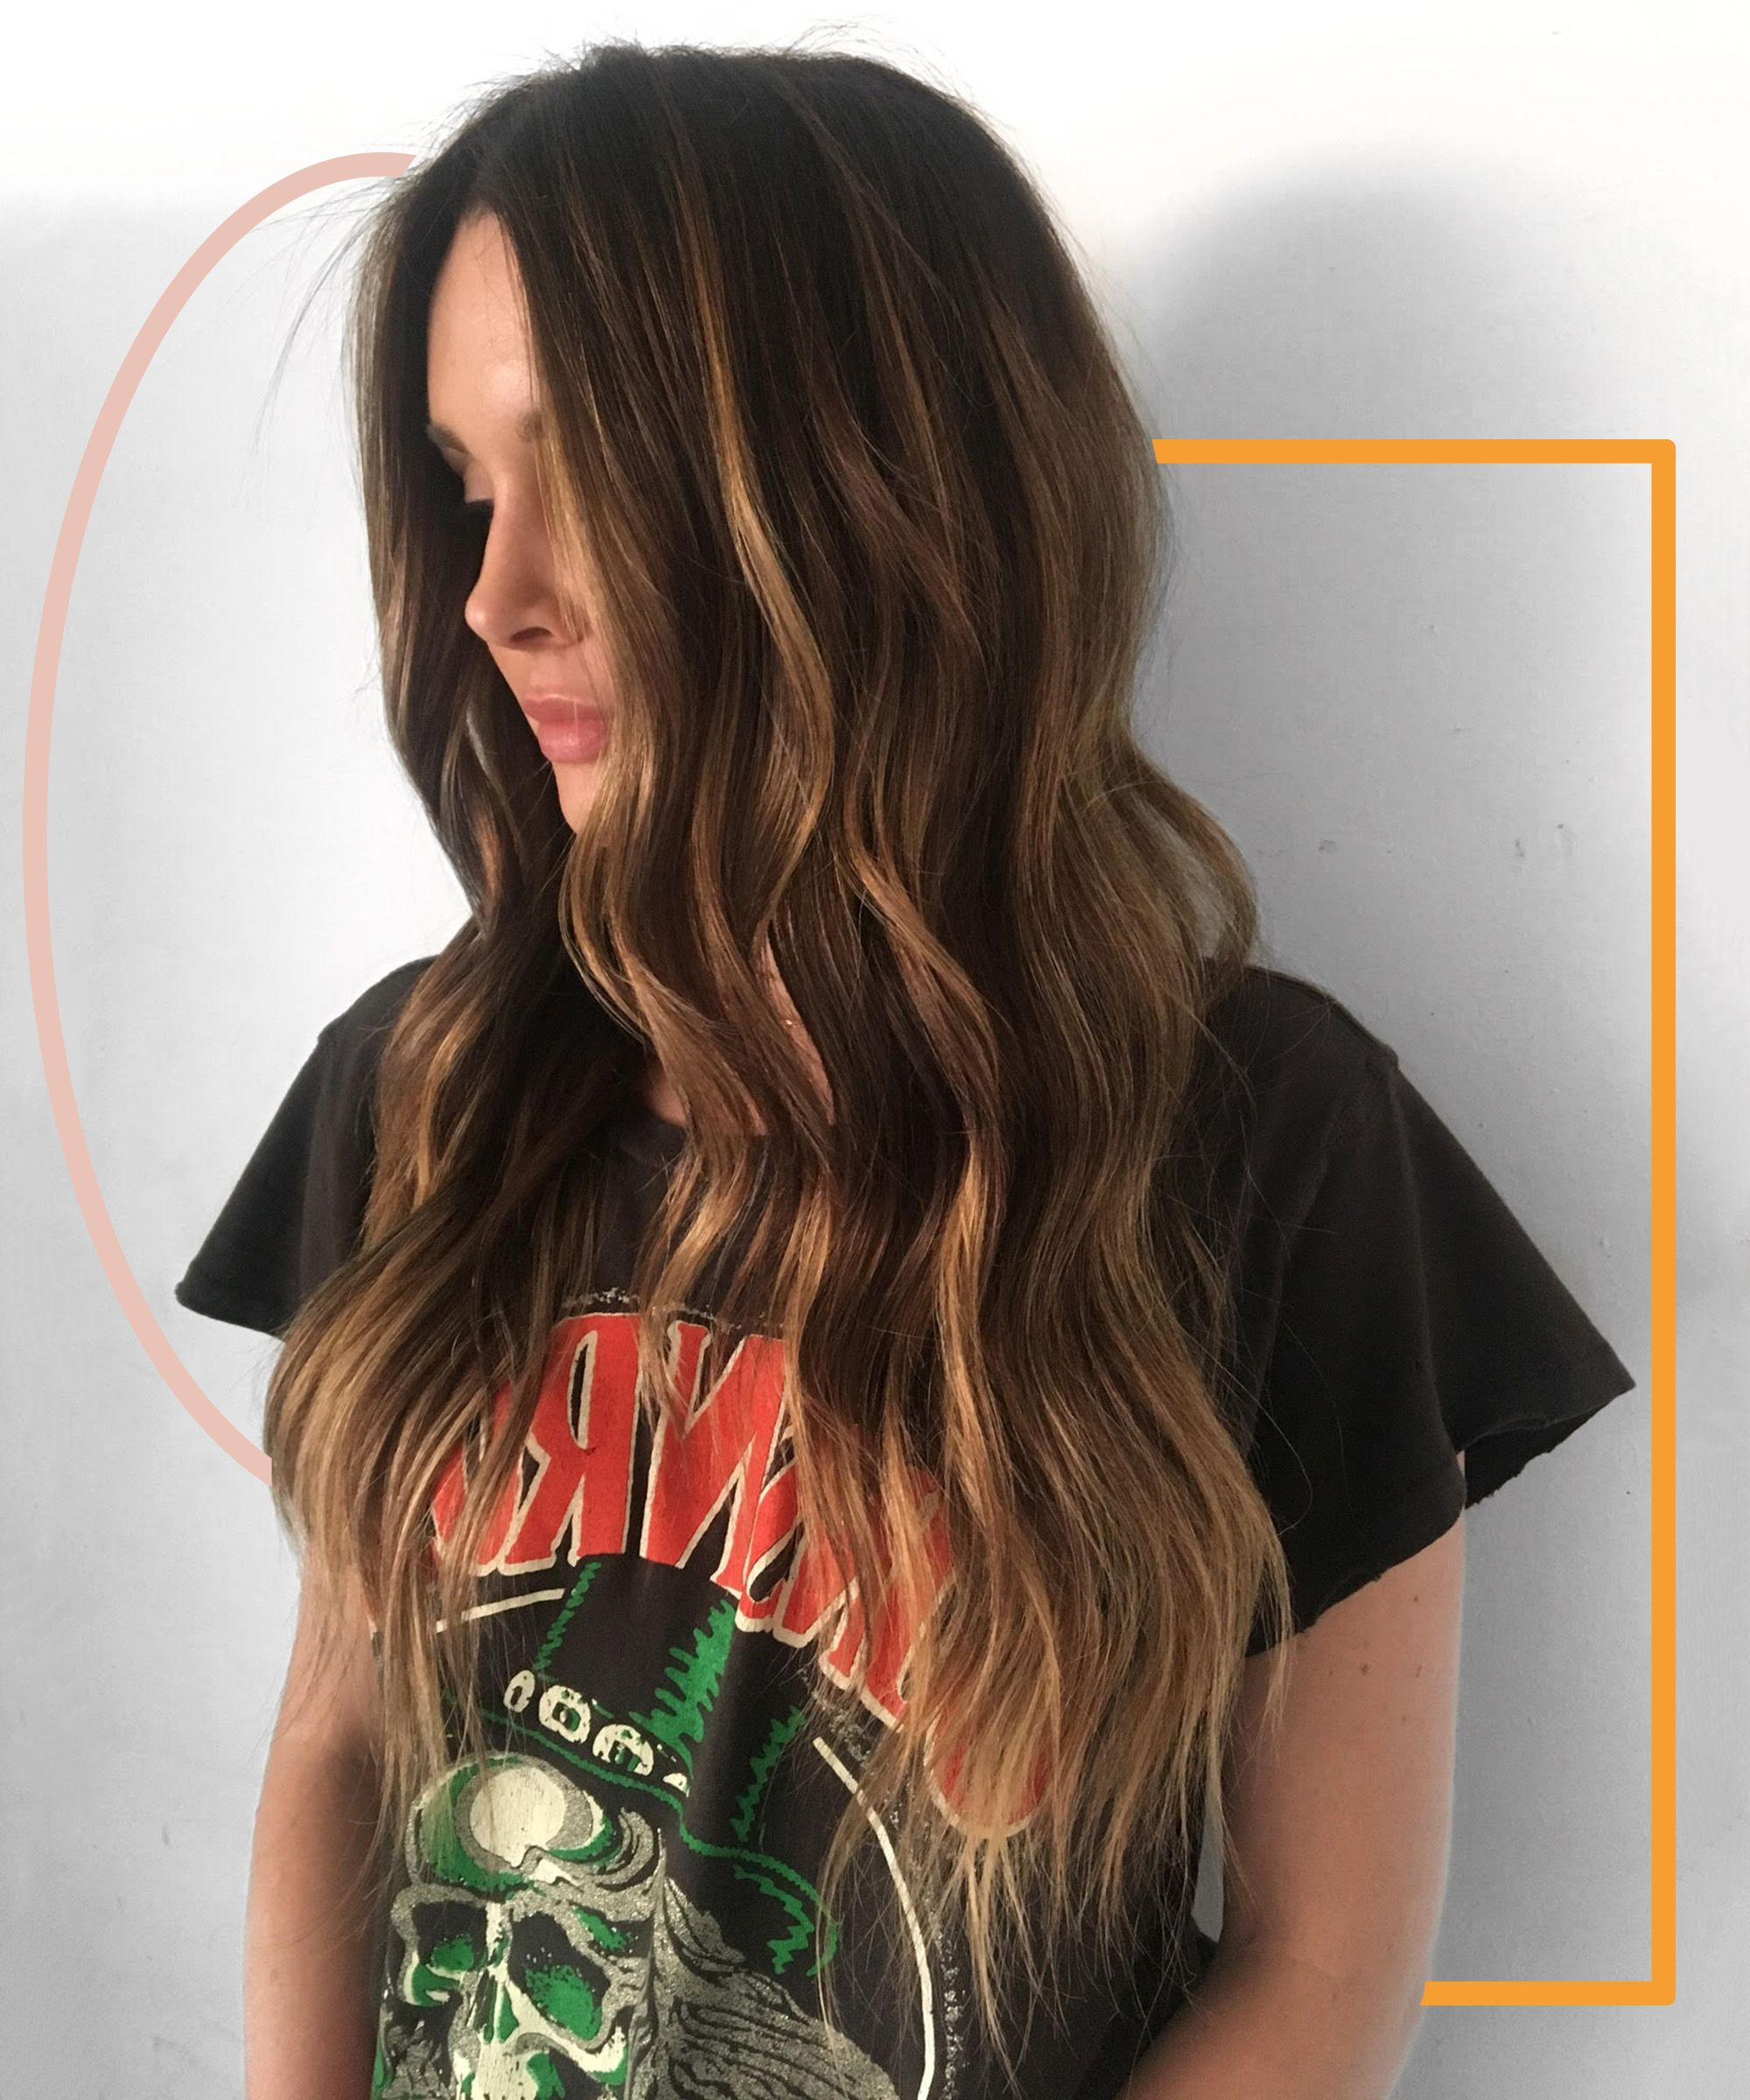 Best And Newest Medium Brown Tones Hairstyles With Subtle Highlights Regarding 2019 Hair Color Trends That Will Be Huge This Winter (View 10 of 20)